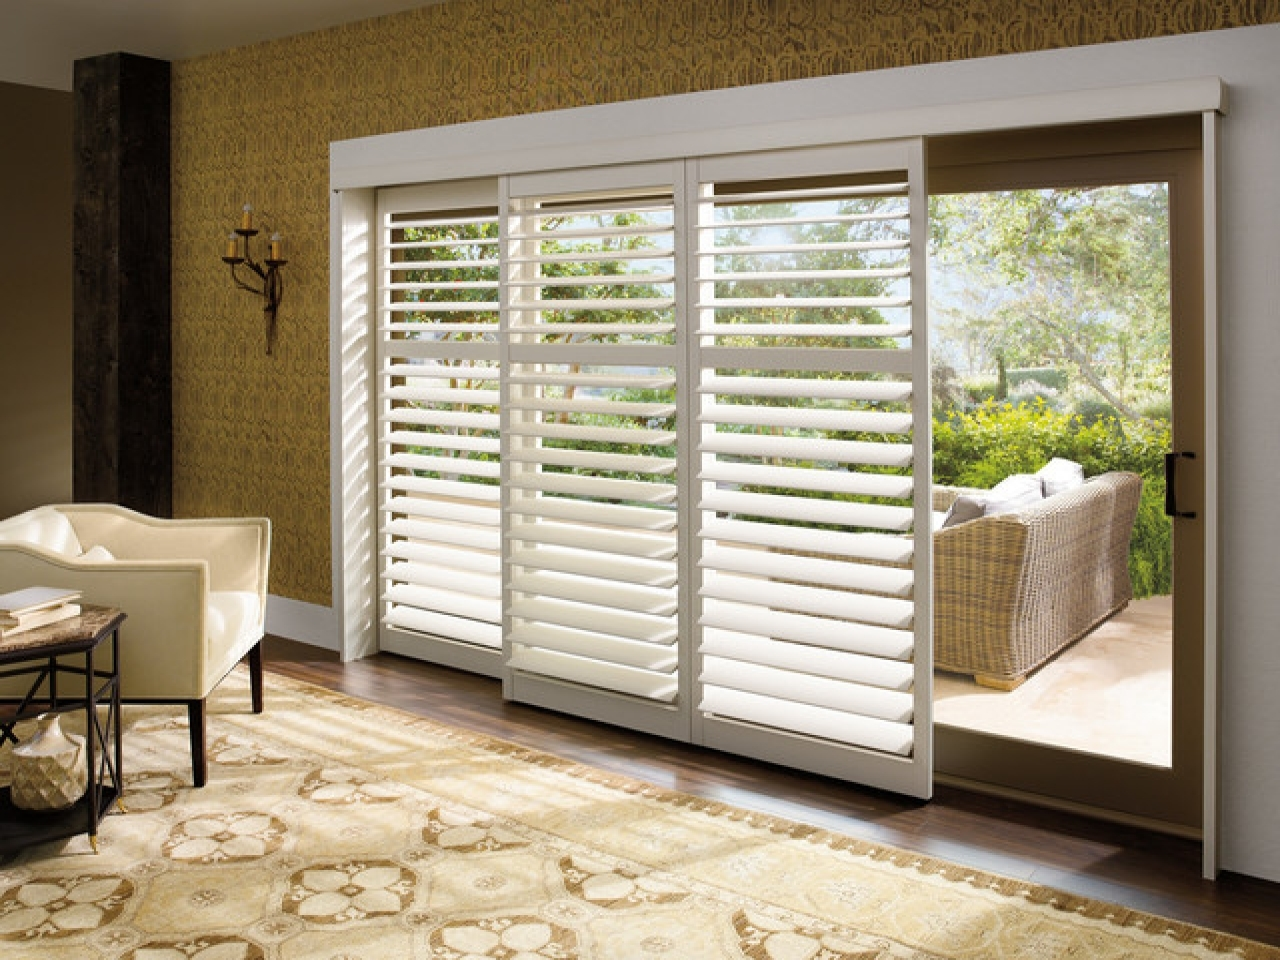 Window Blinds Sliding Glass Doors1280 X 960